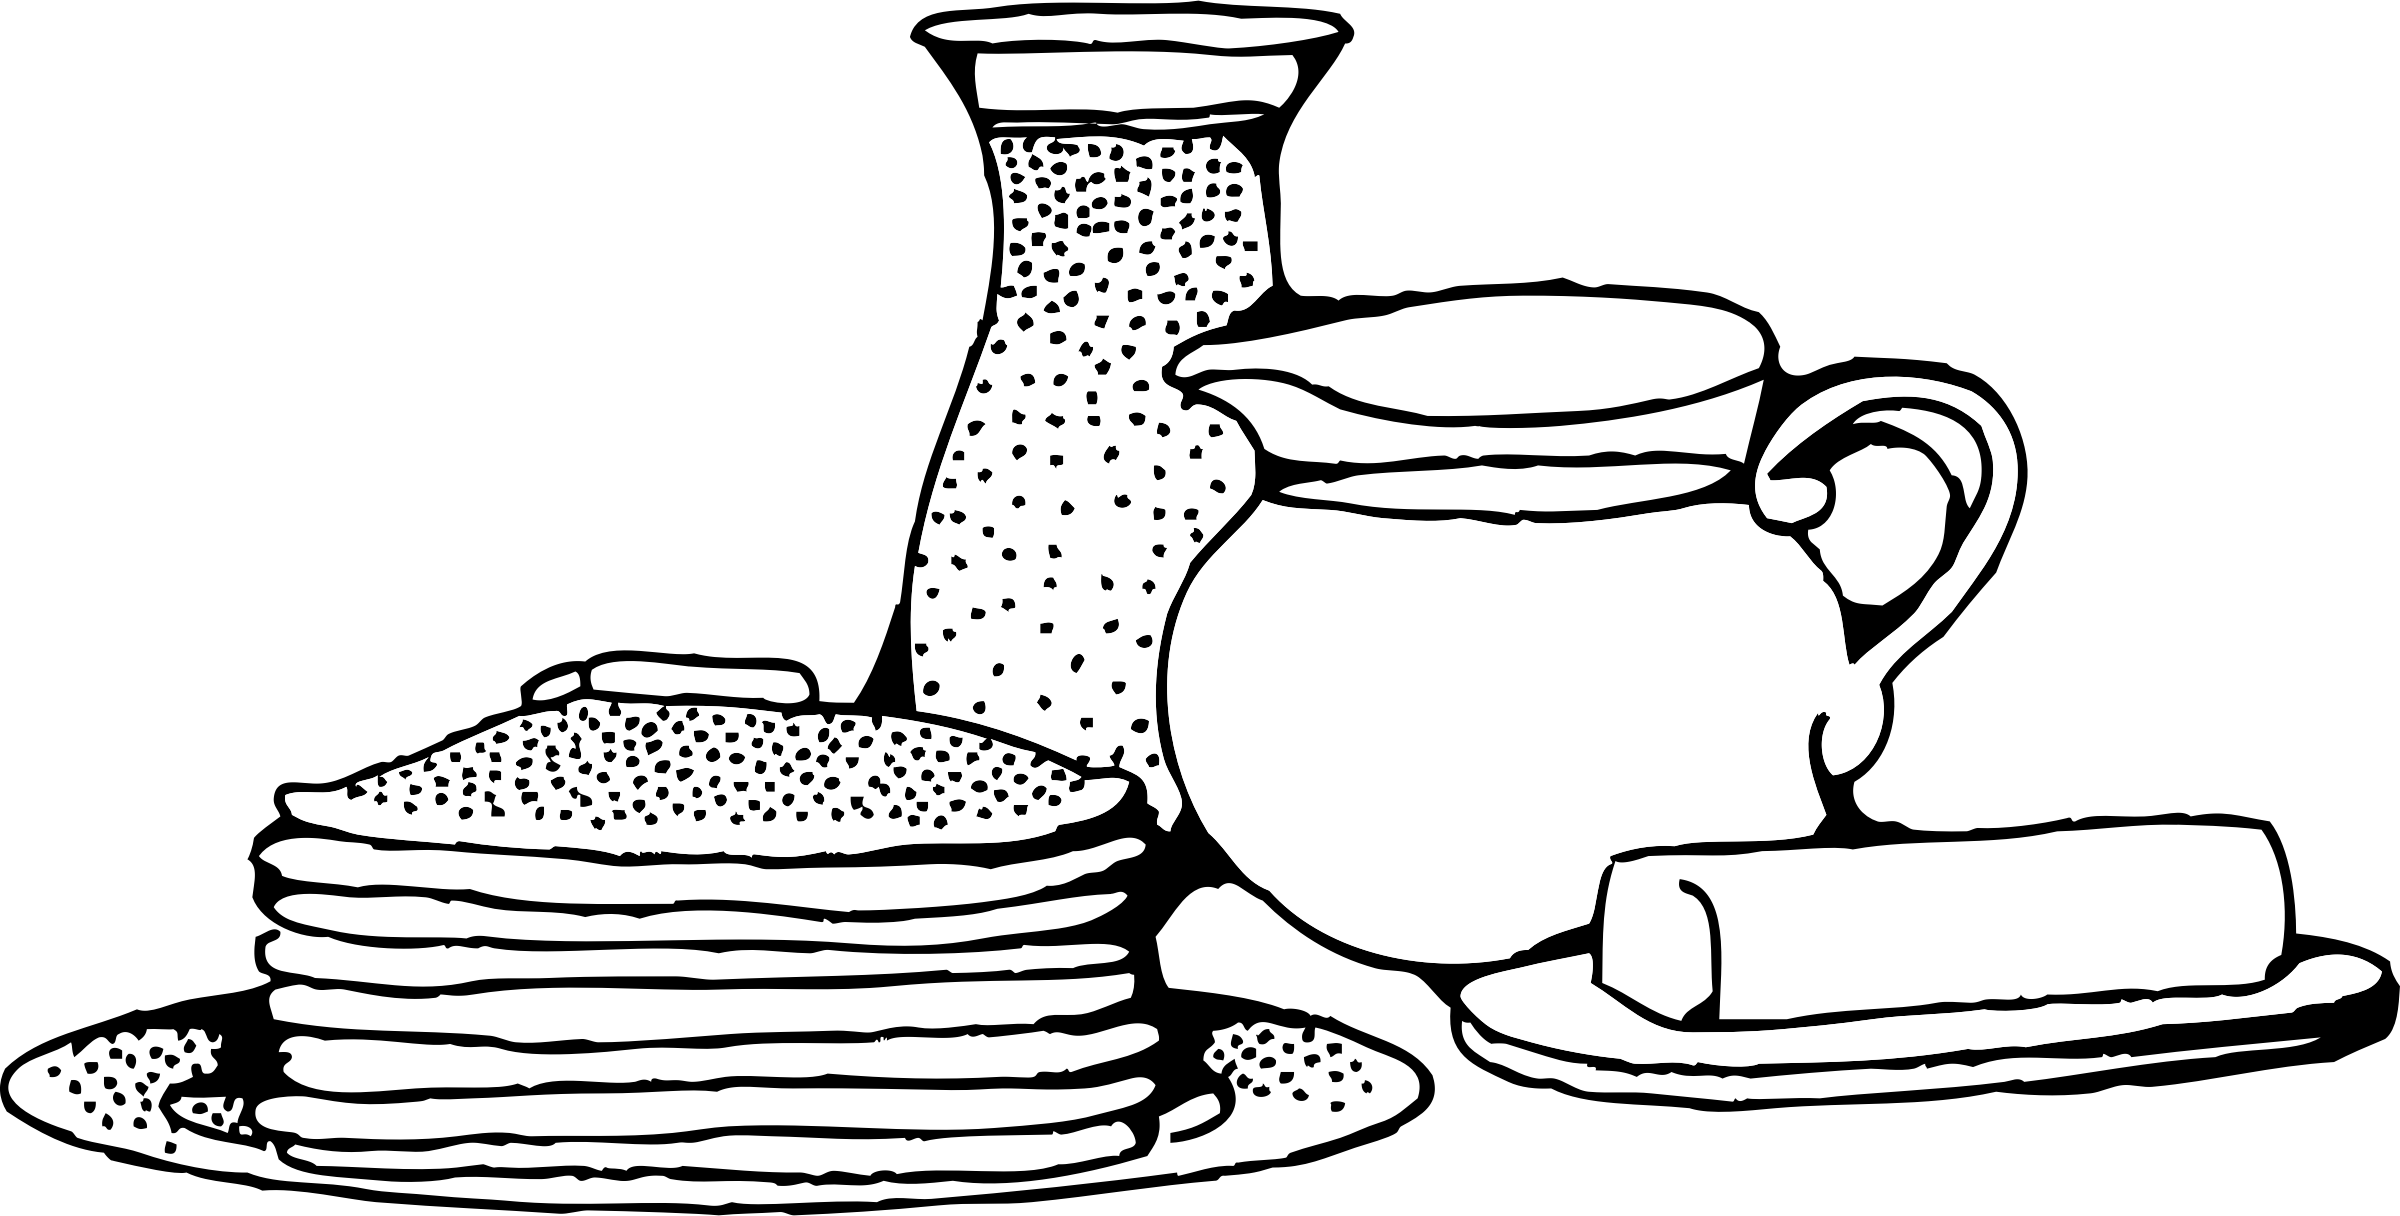 Shrove tuesday clipart clipart images gallery for free.